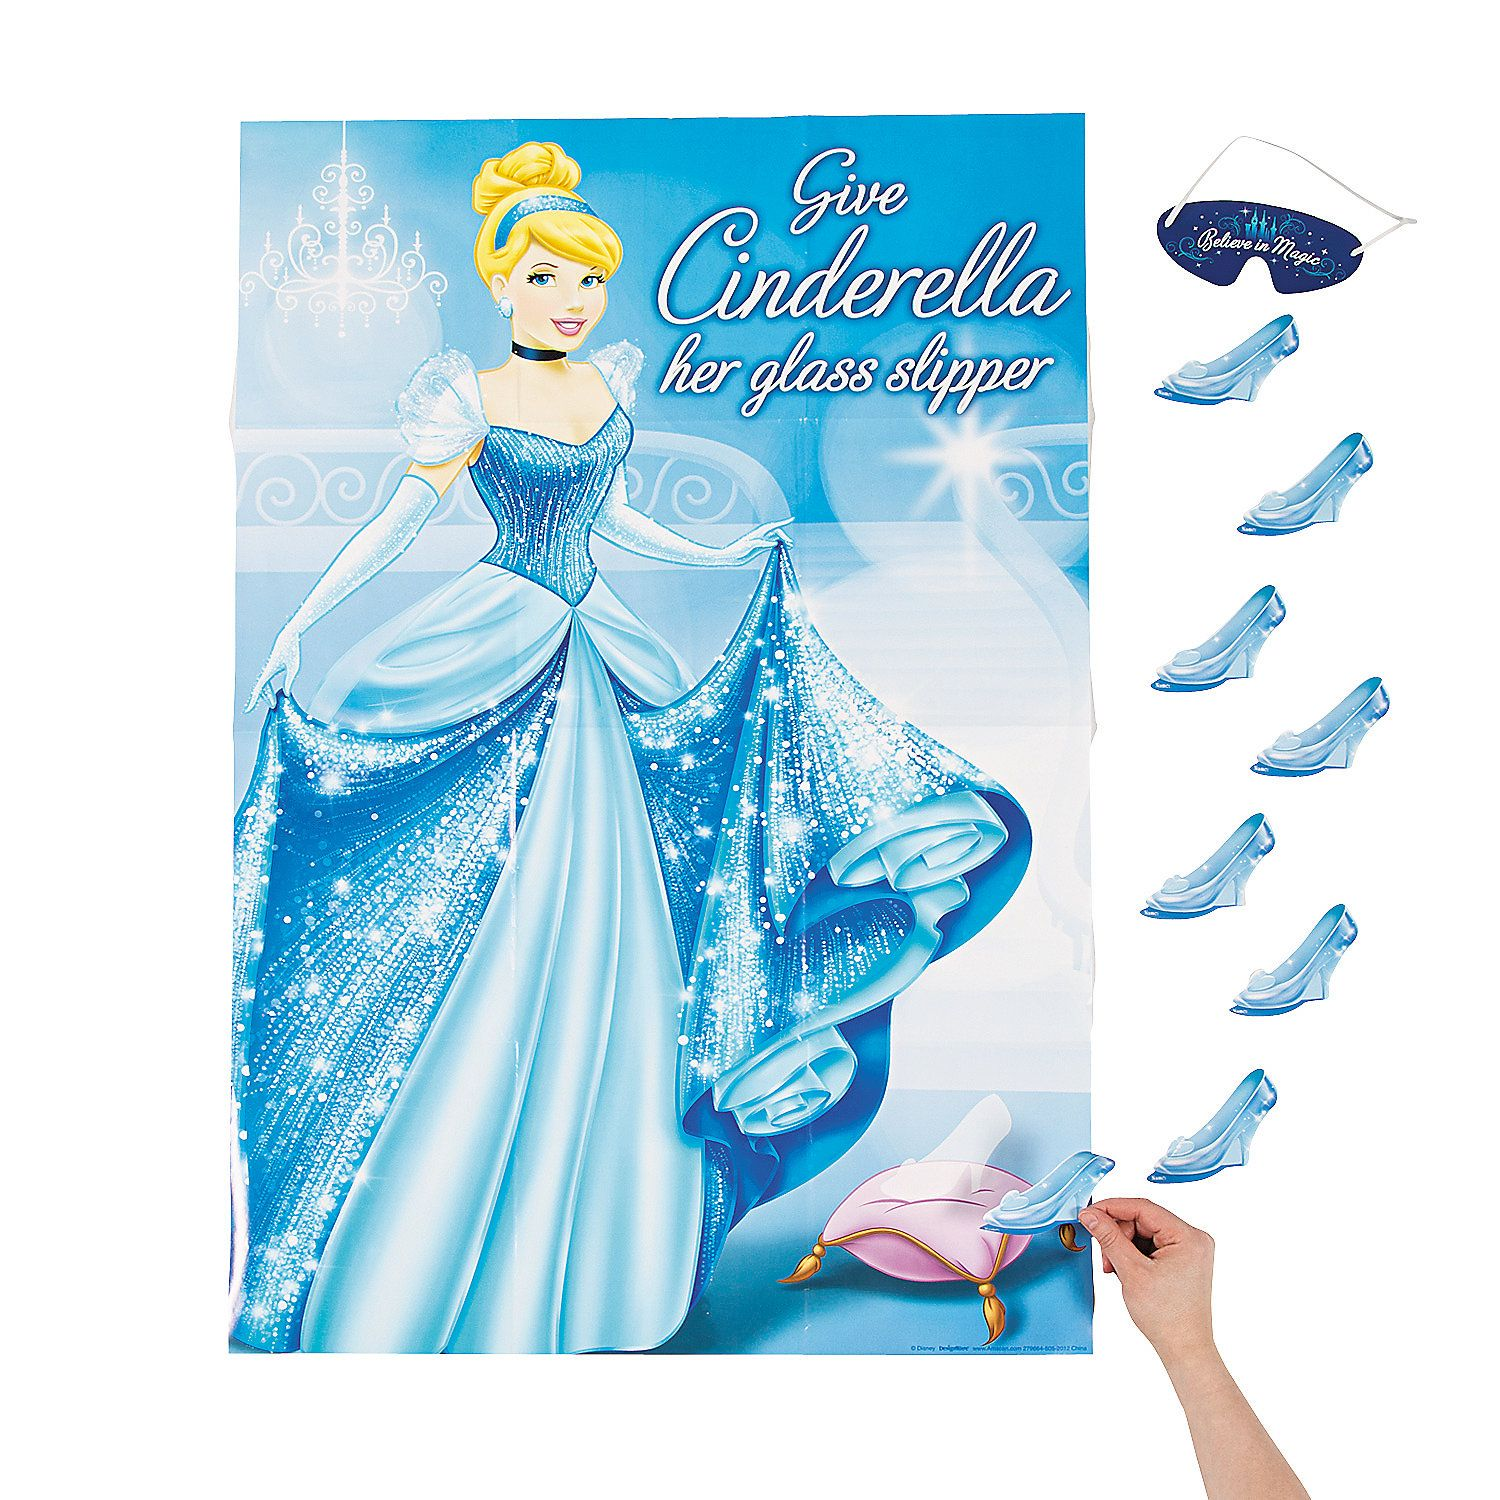 Cinderella Sparkle Party Game Orientaltrading Com Gianna S 4th